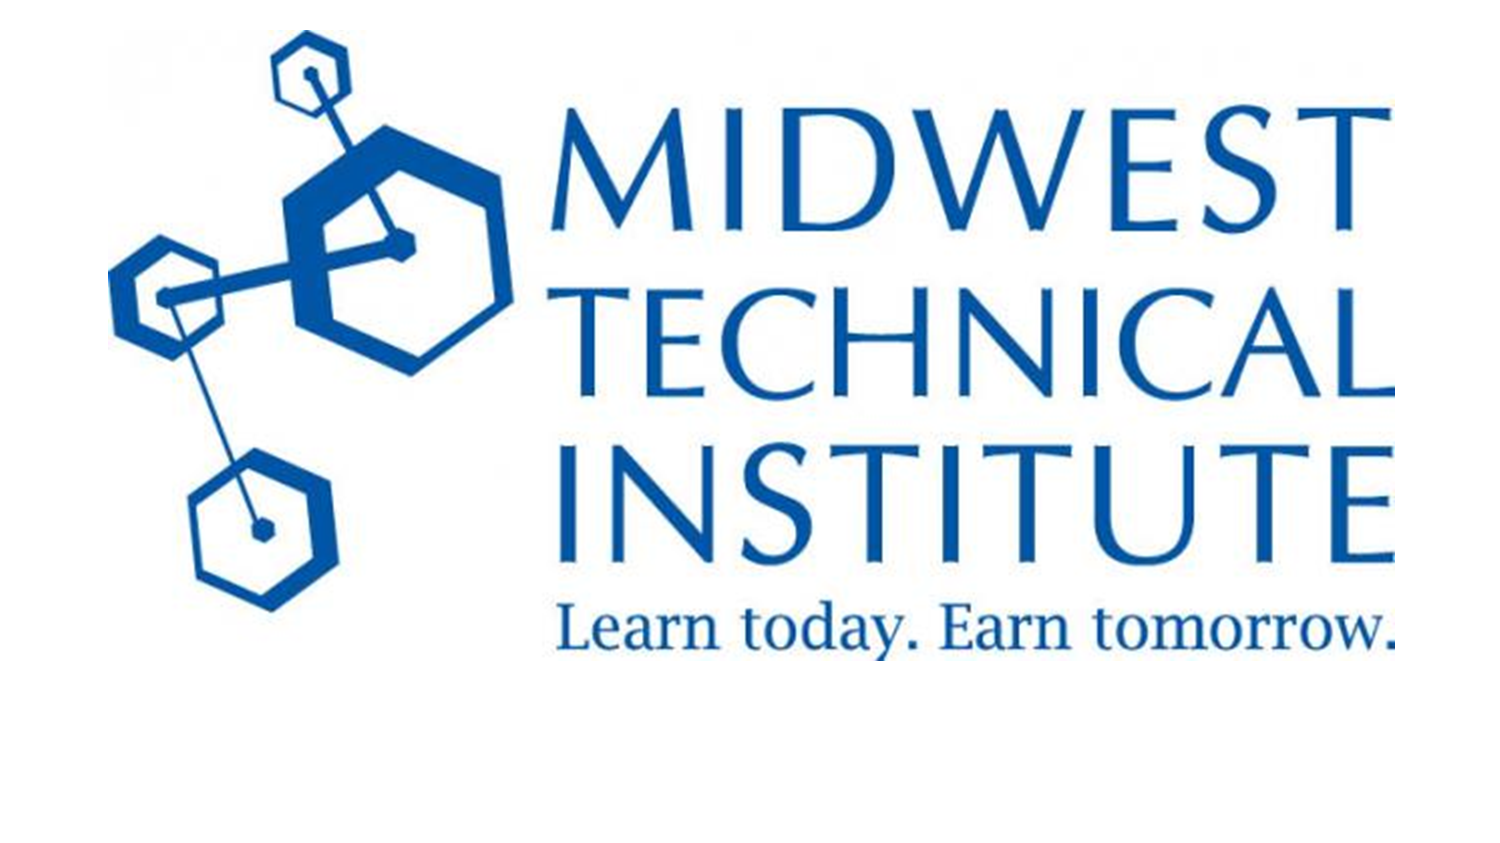 Summer Street Invests in Midwest Technical Institute